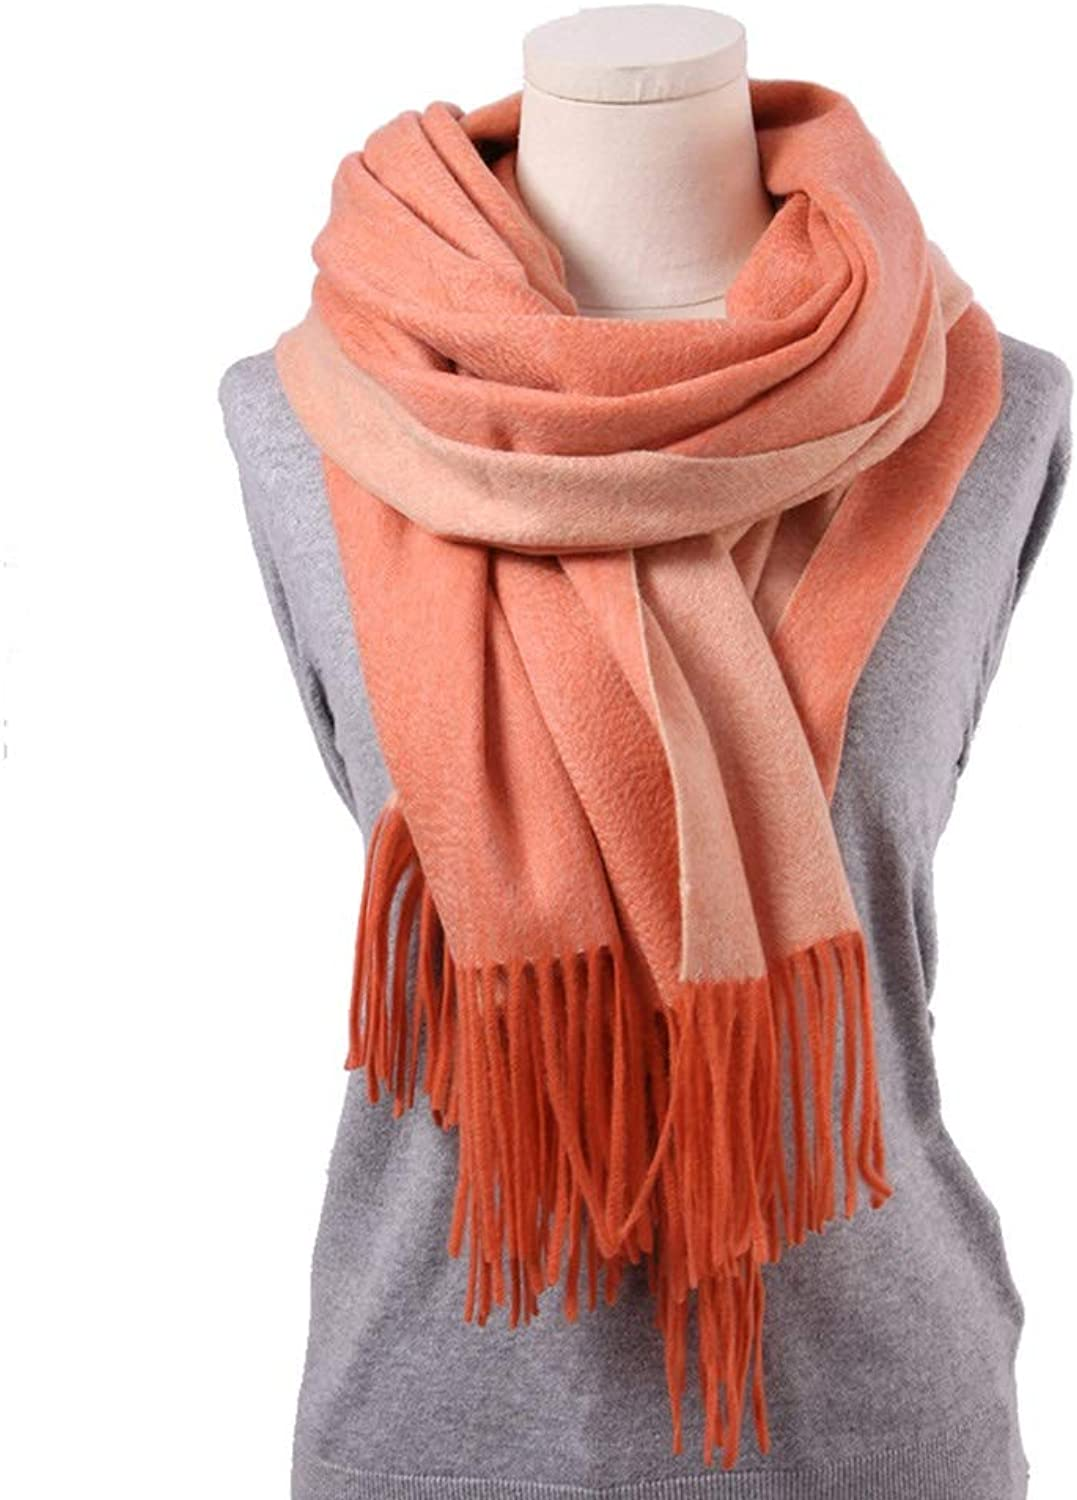 Water Ripple Ladies Shawl Large Size Thick Solid color Autumn and Winter Wool Shawl Soft Wild color Collar Size 200  70cm (color   orange, Size   One Size)